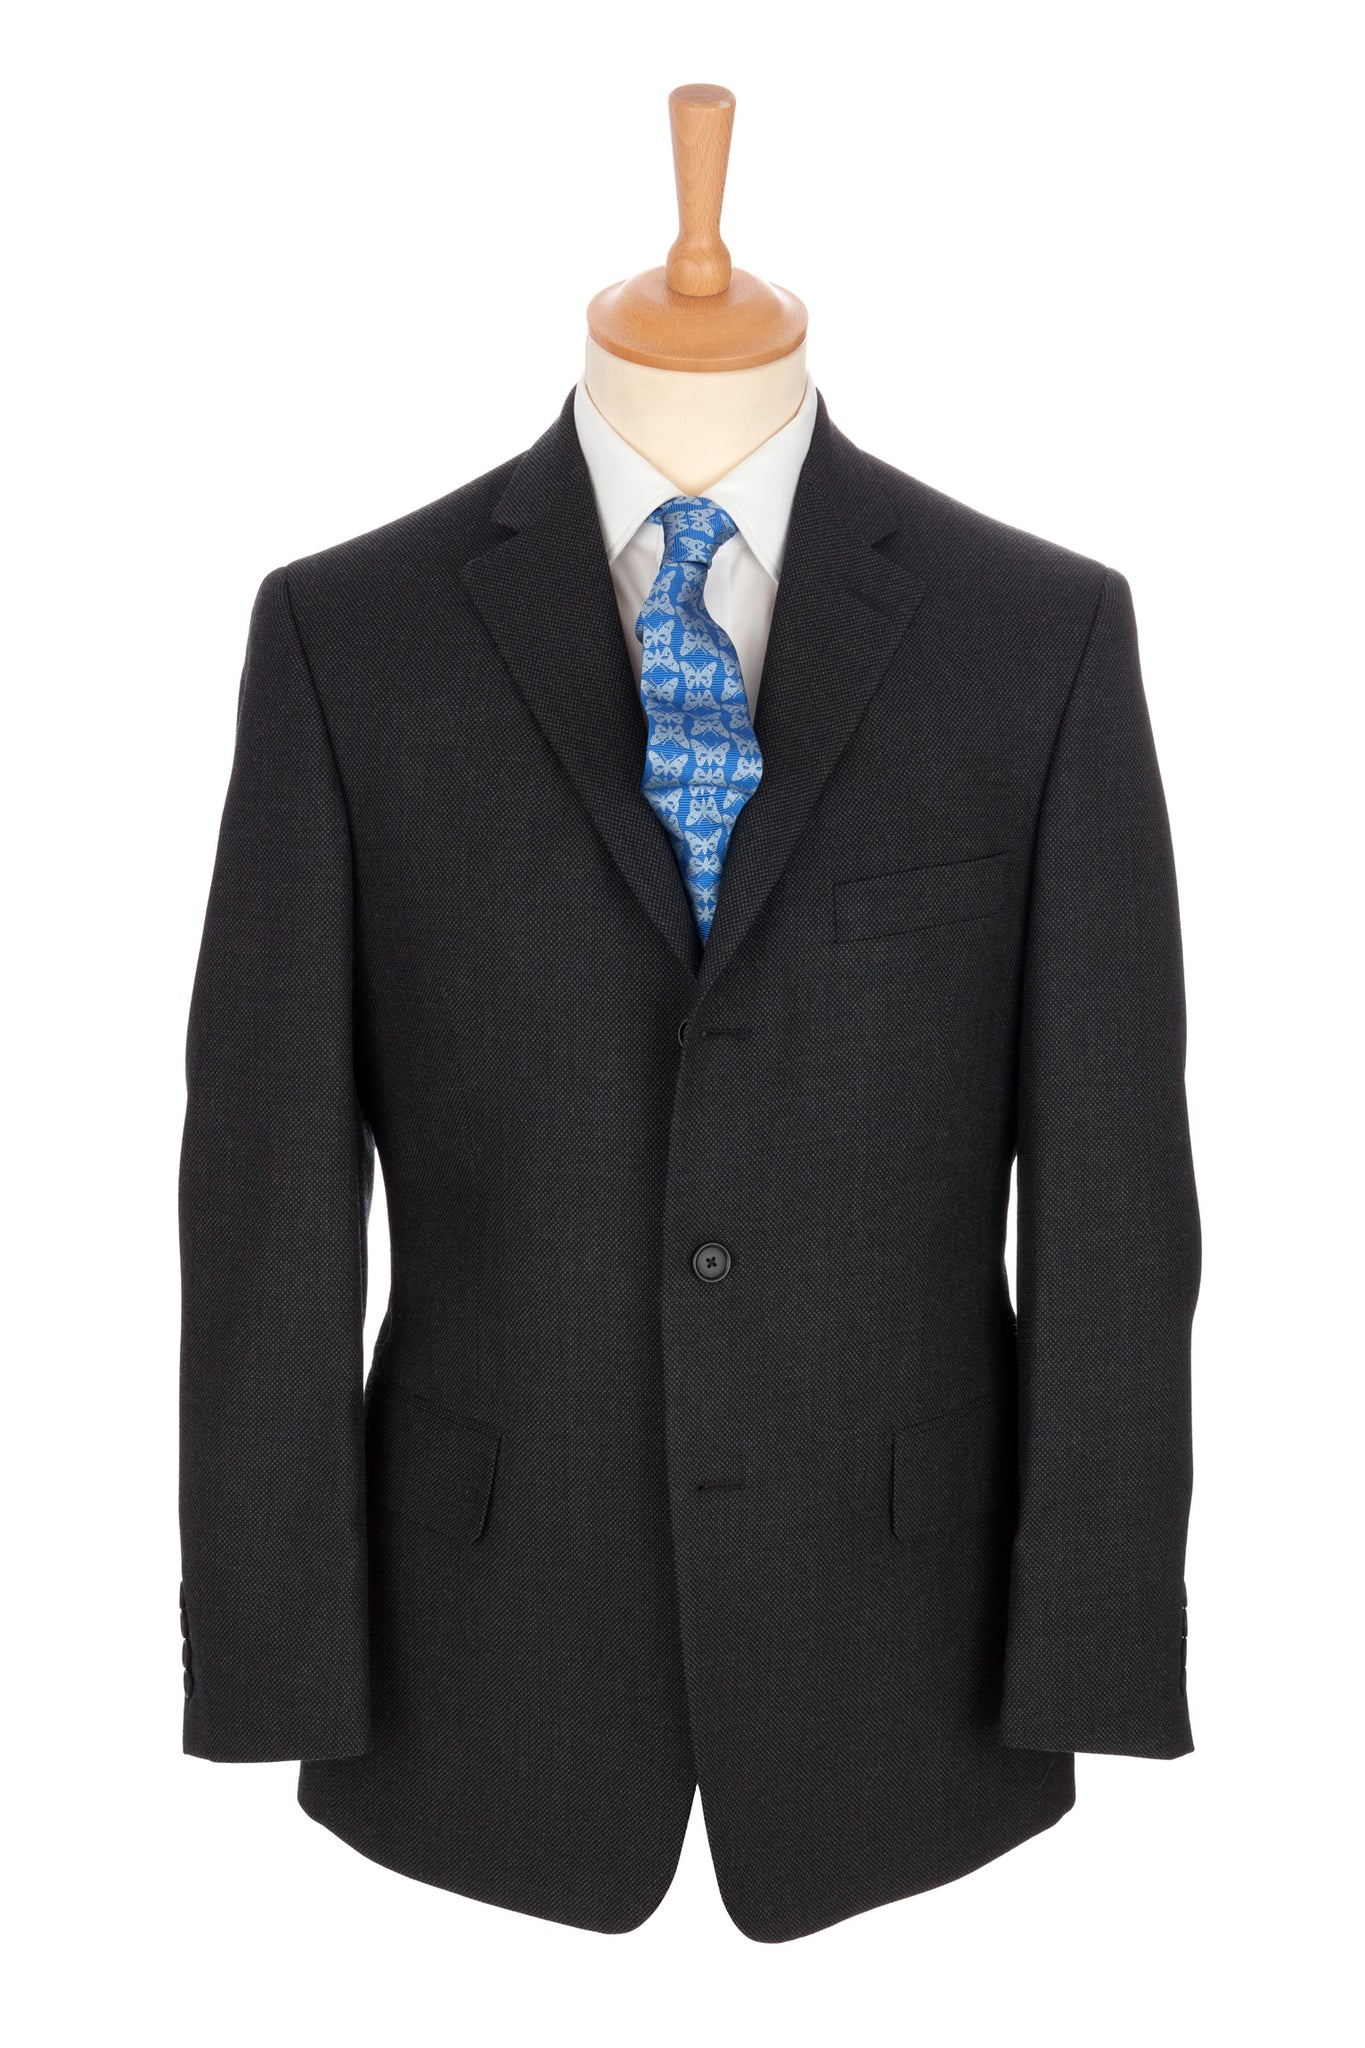 Regent - 'Charles' Heritage - 3-Button Suit In Grey Wool - Regent Tailoring